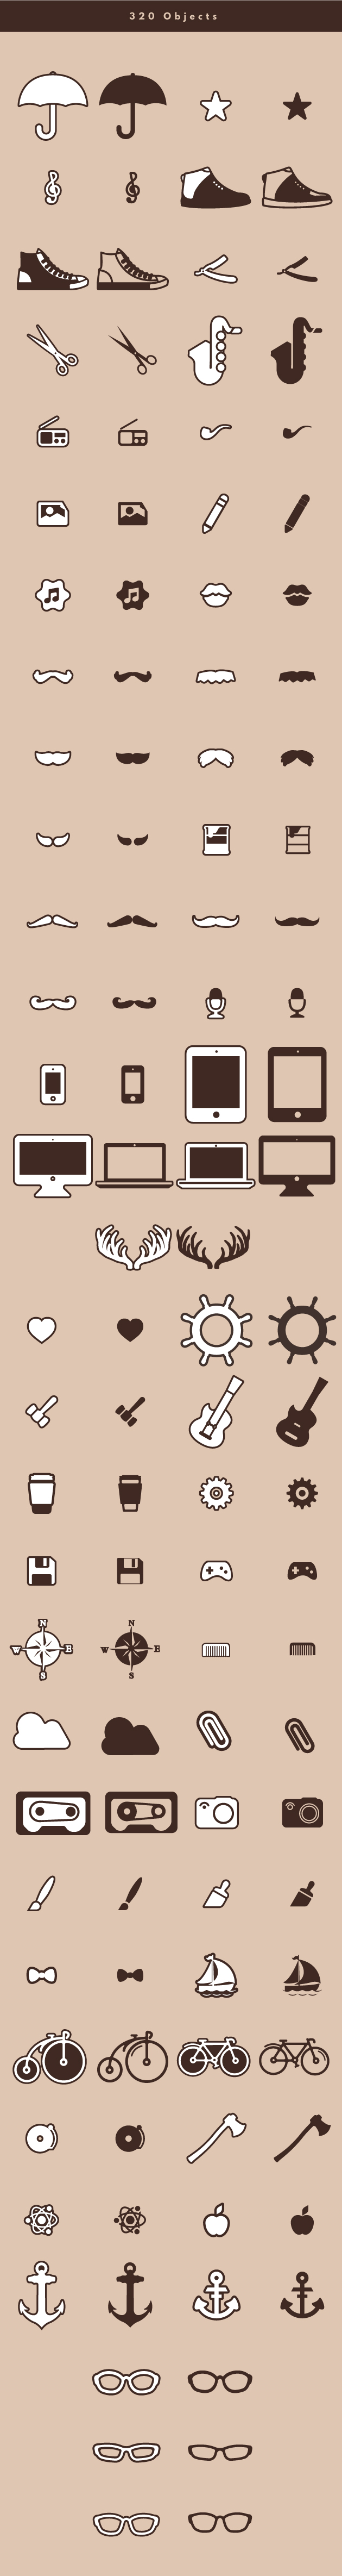 hipster_icon_preview_02